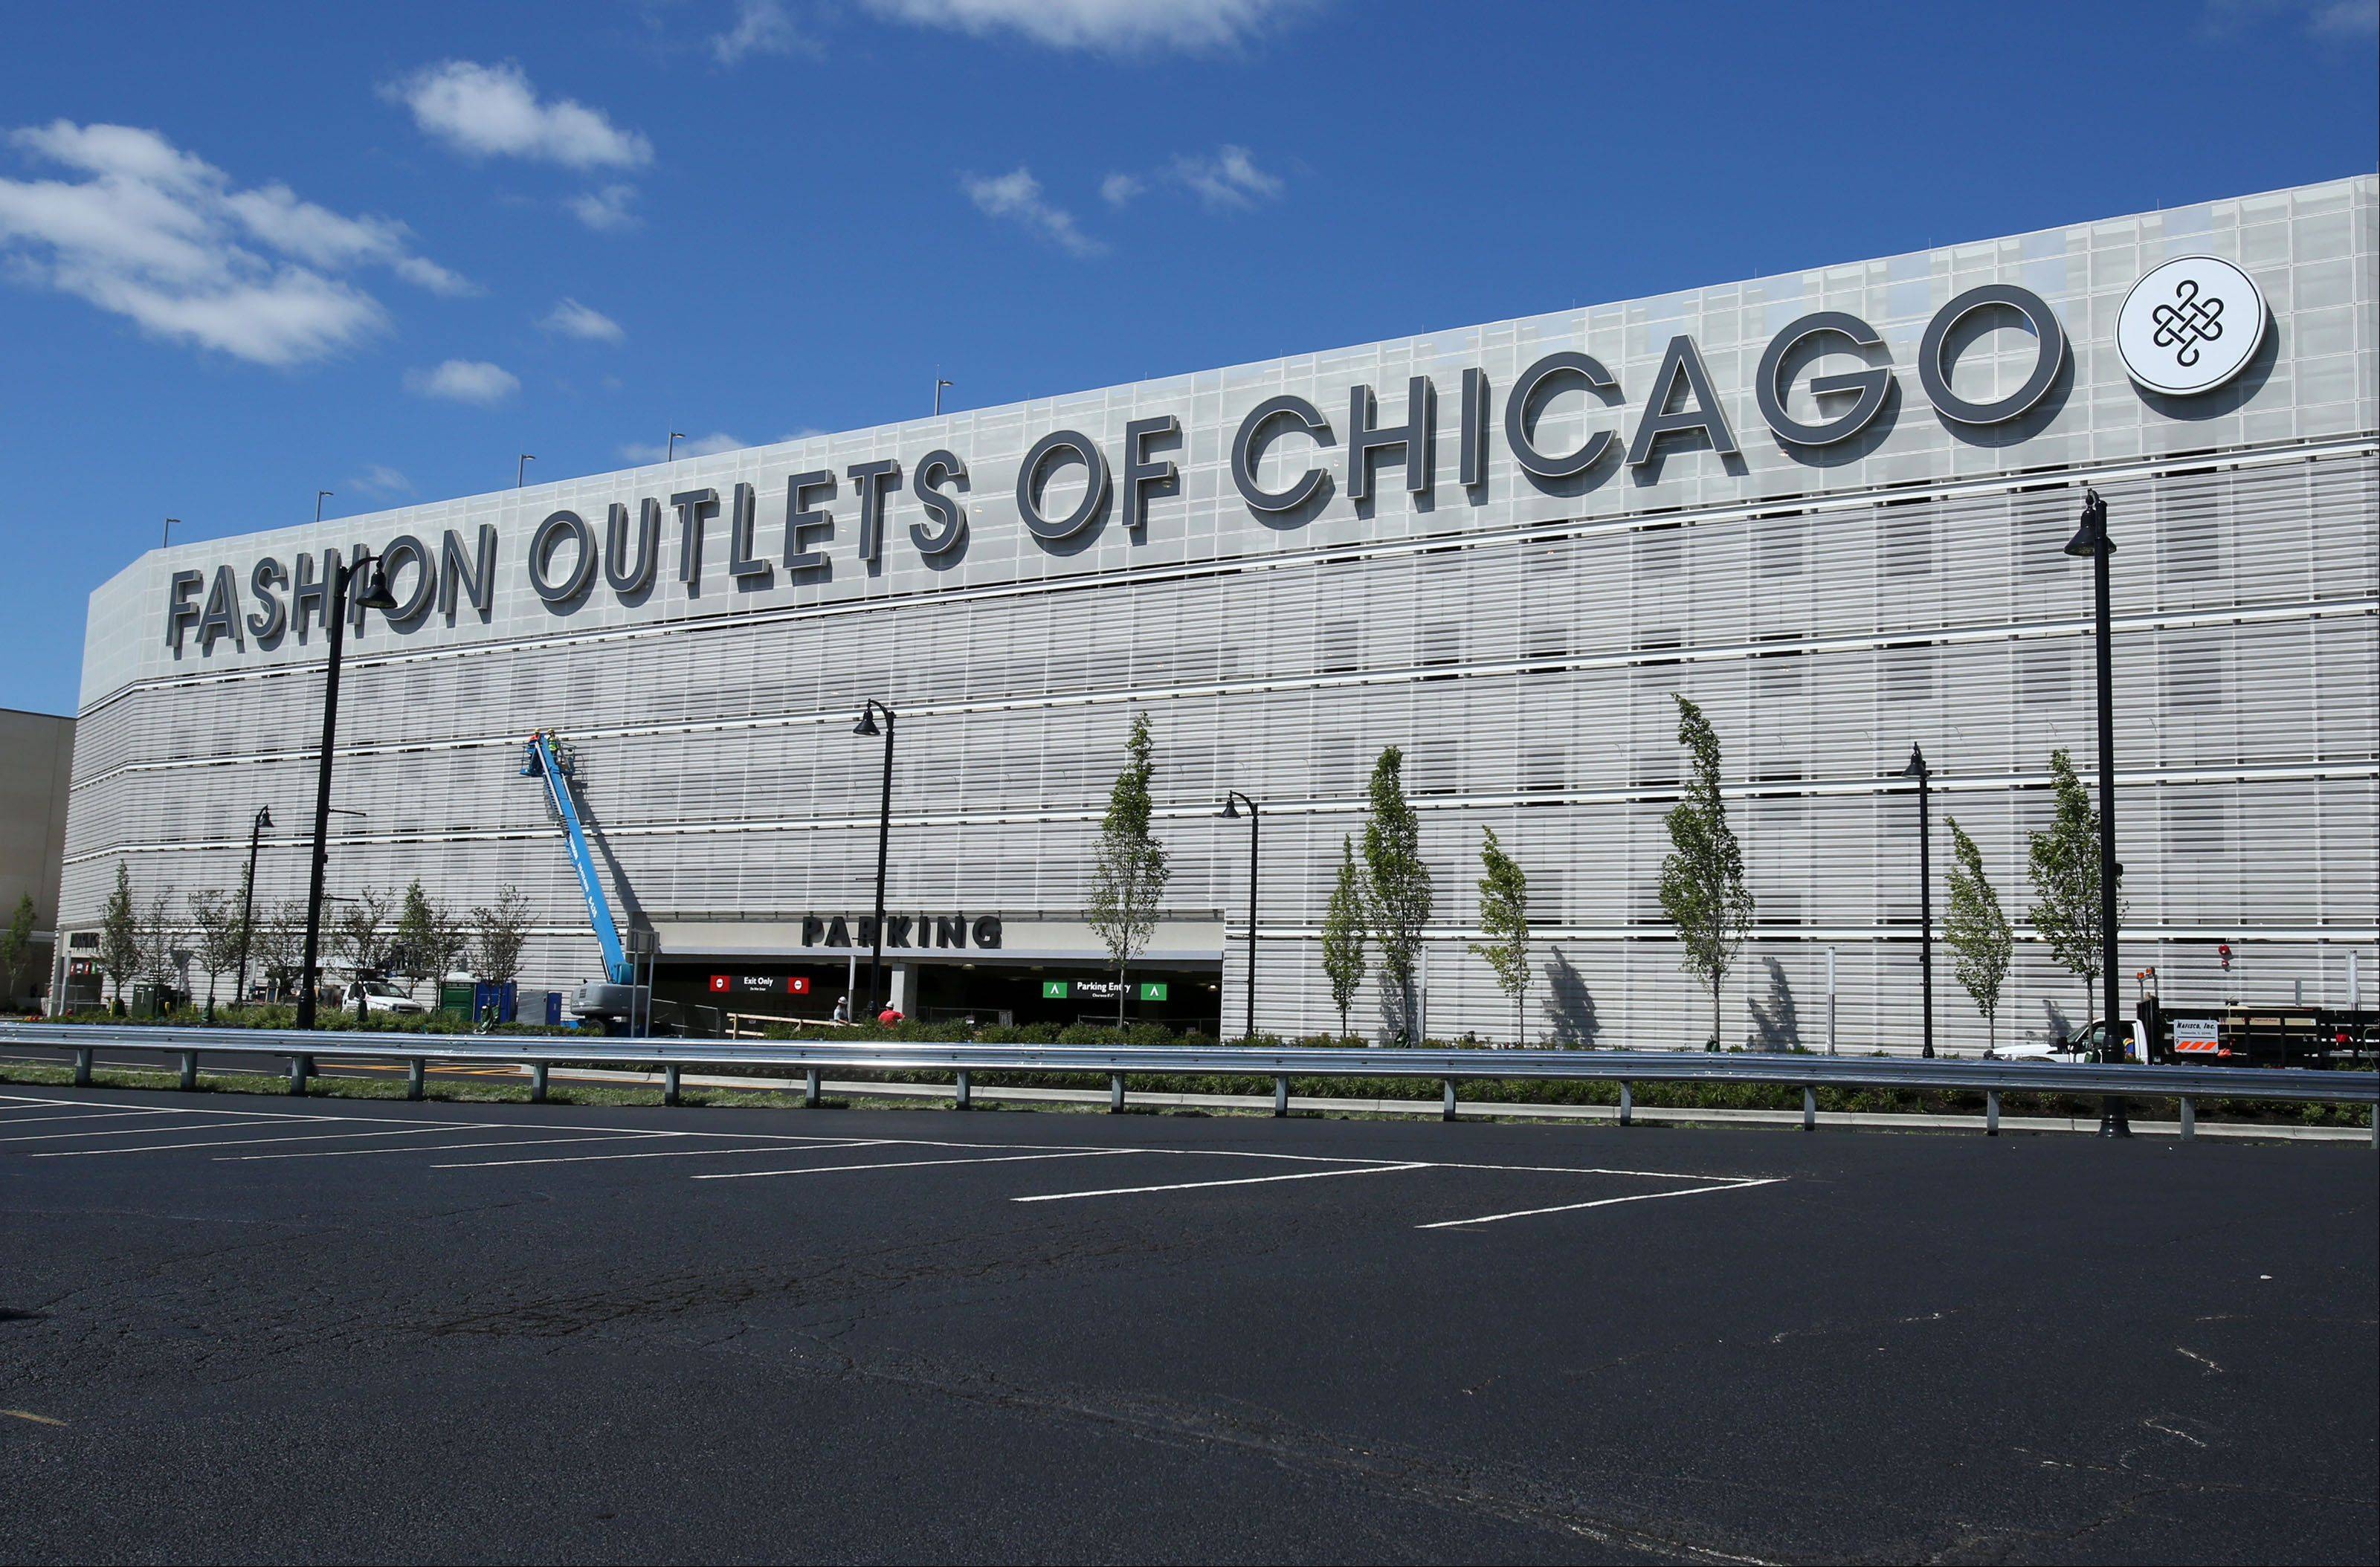 This is an exterior view of Fashion Outlets of Chicago, which opens Thursday in Rosemont.